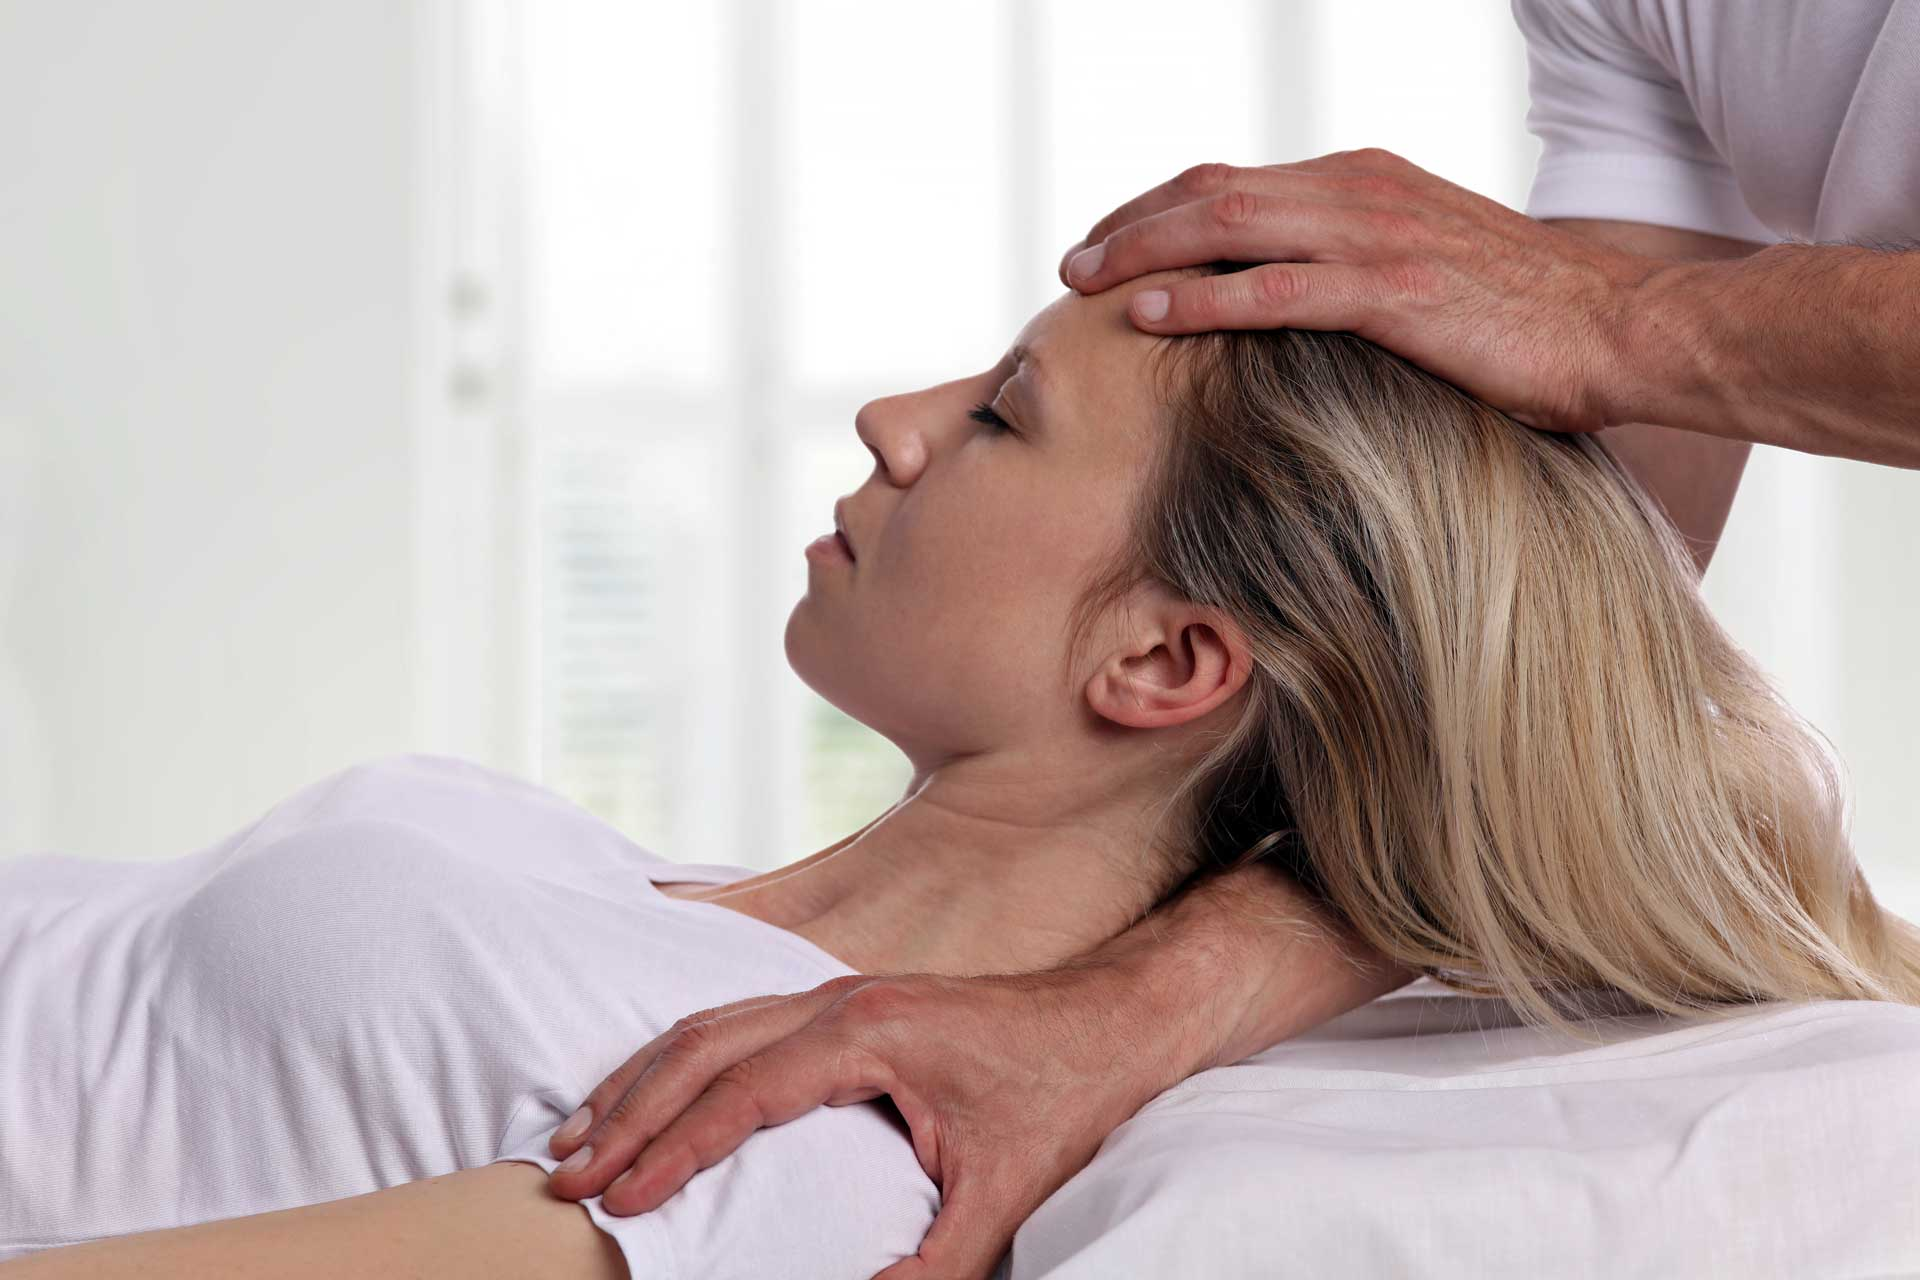 Best Chiropractor For Whiplash Treatment in Wayne and Conshohocken, PA